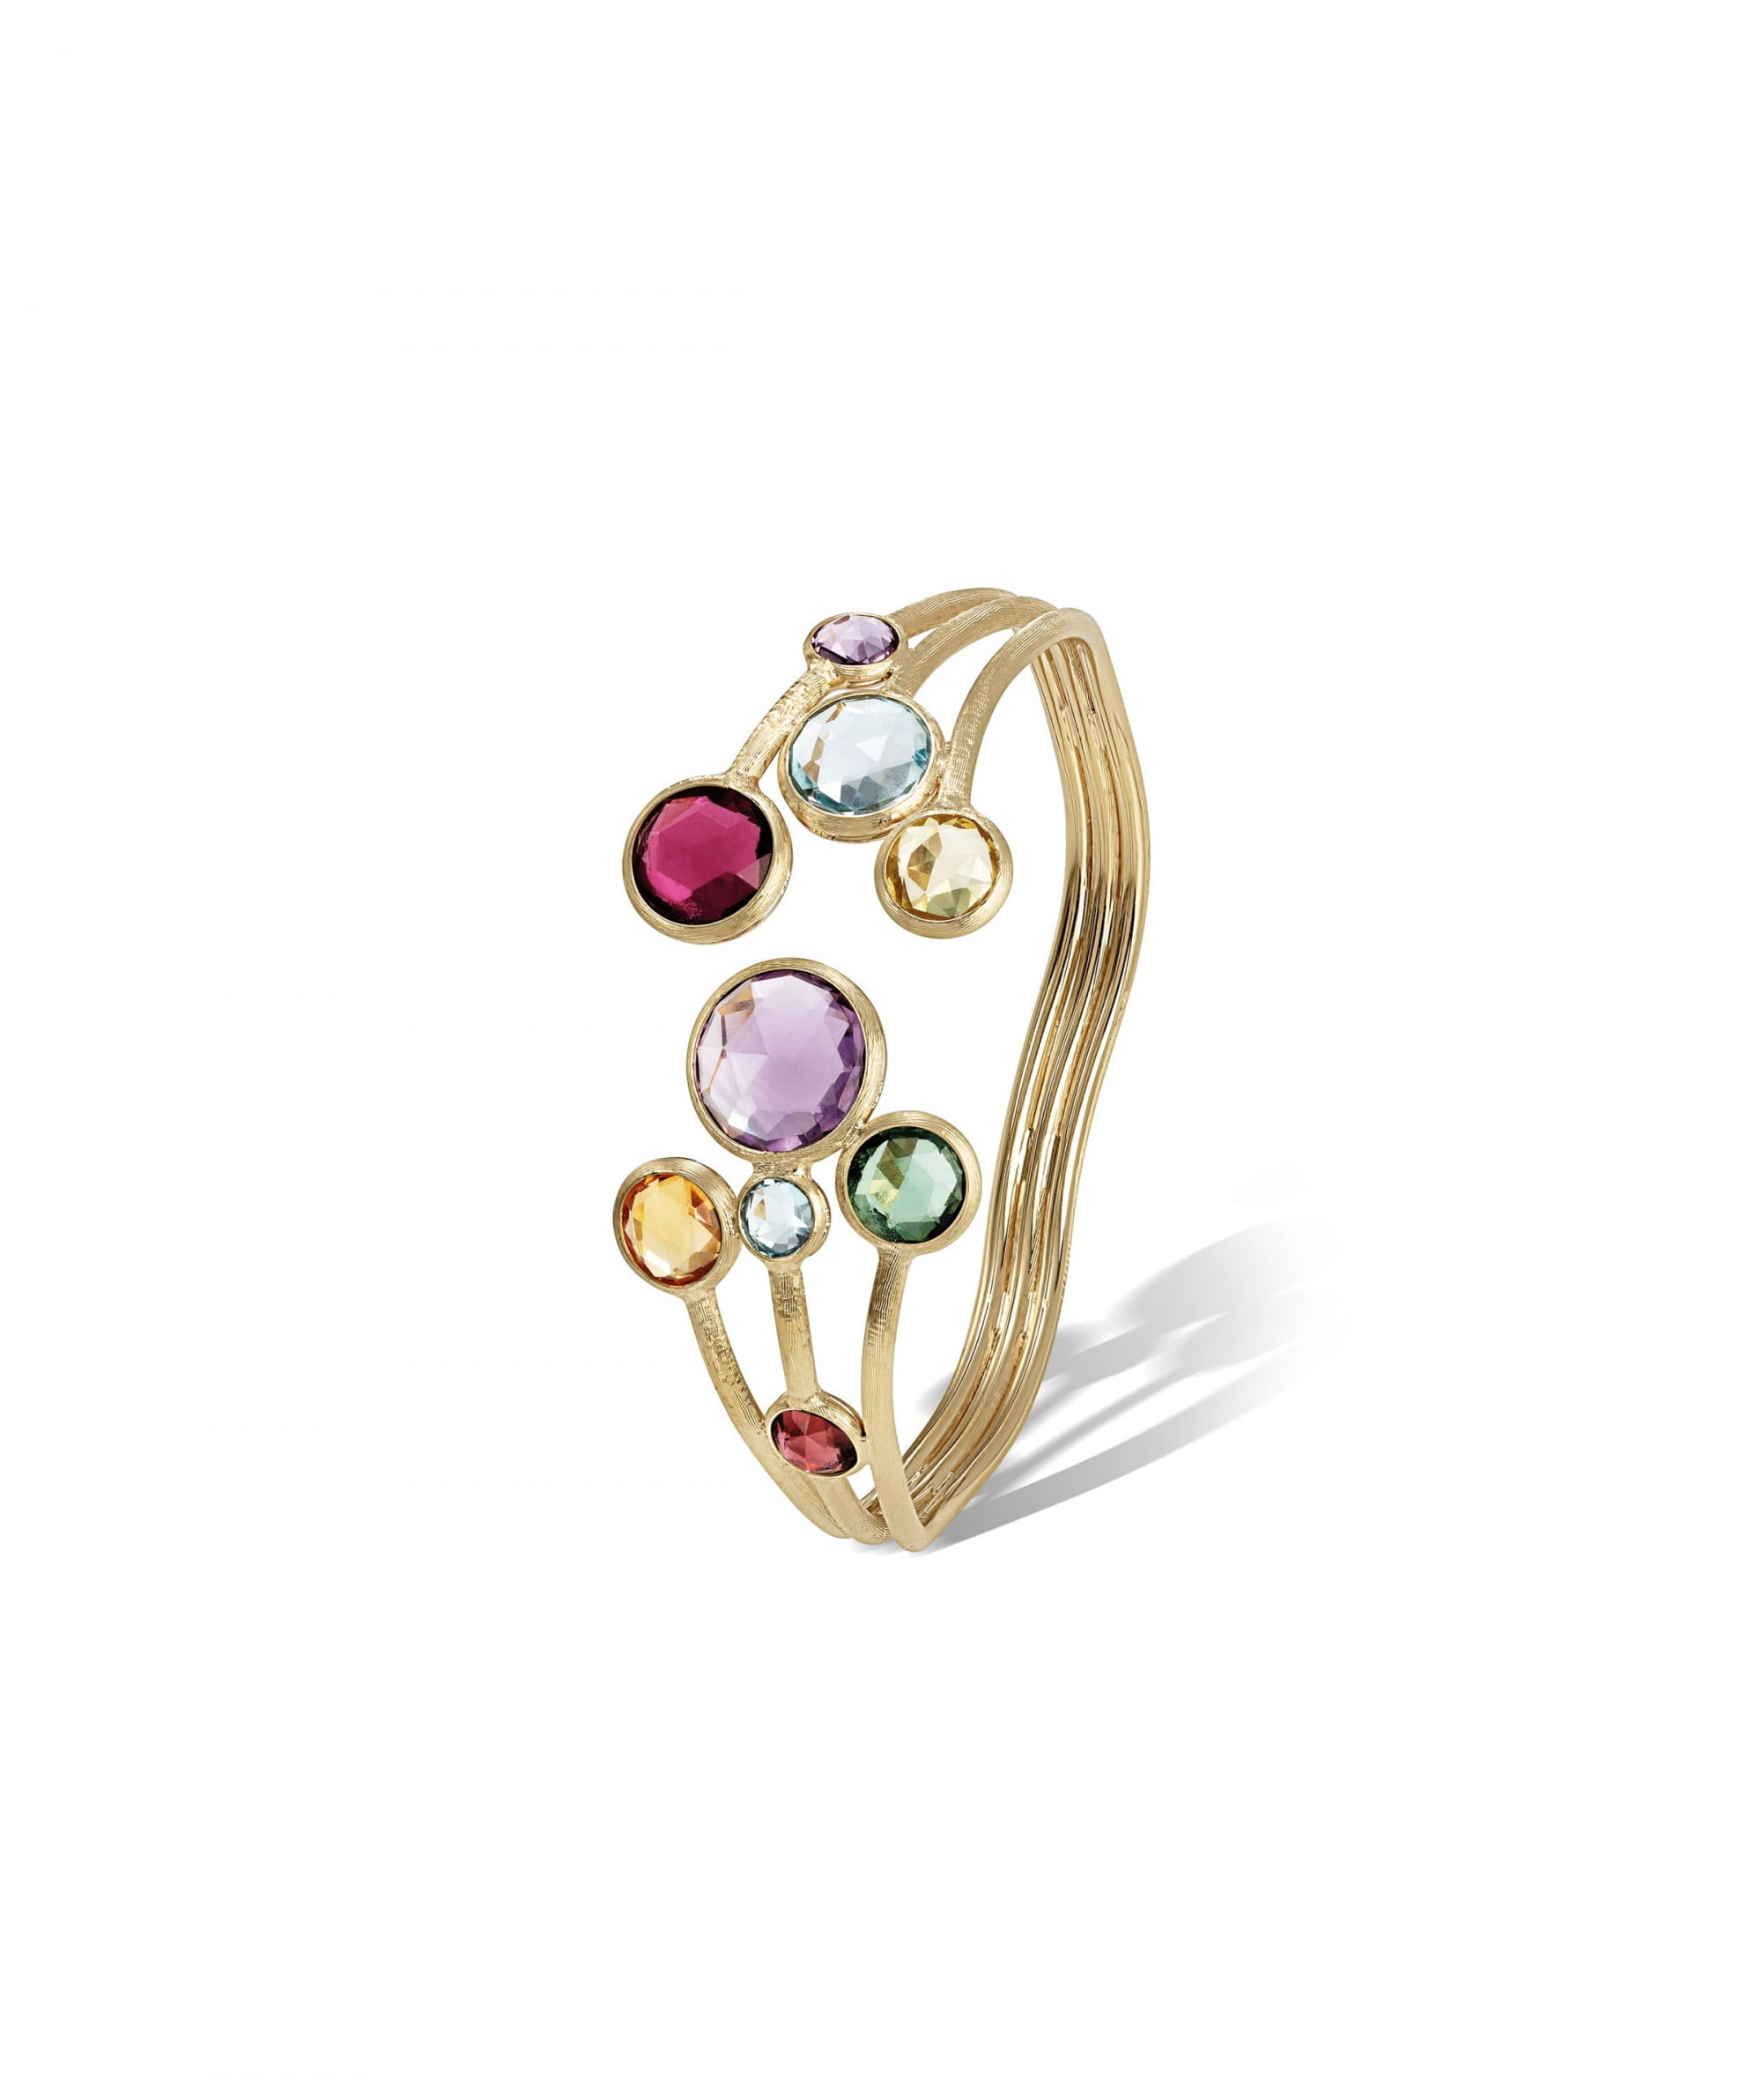 Jaipur Colour Bangle in 18k Yellow Gold with Mixed Gemstones Three Strand - Orsini Jewellers NZ